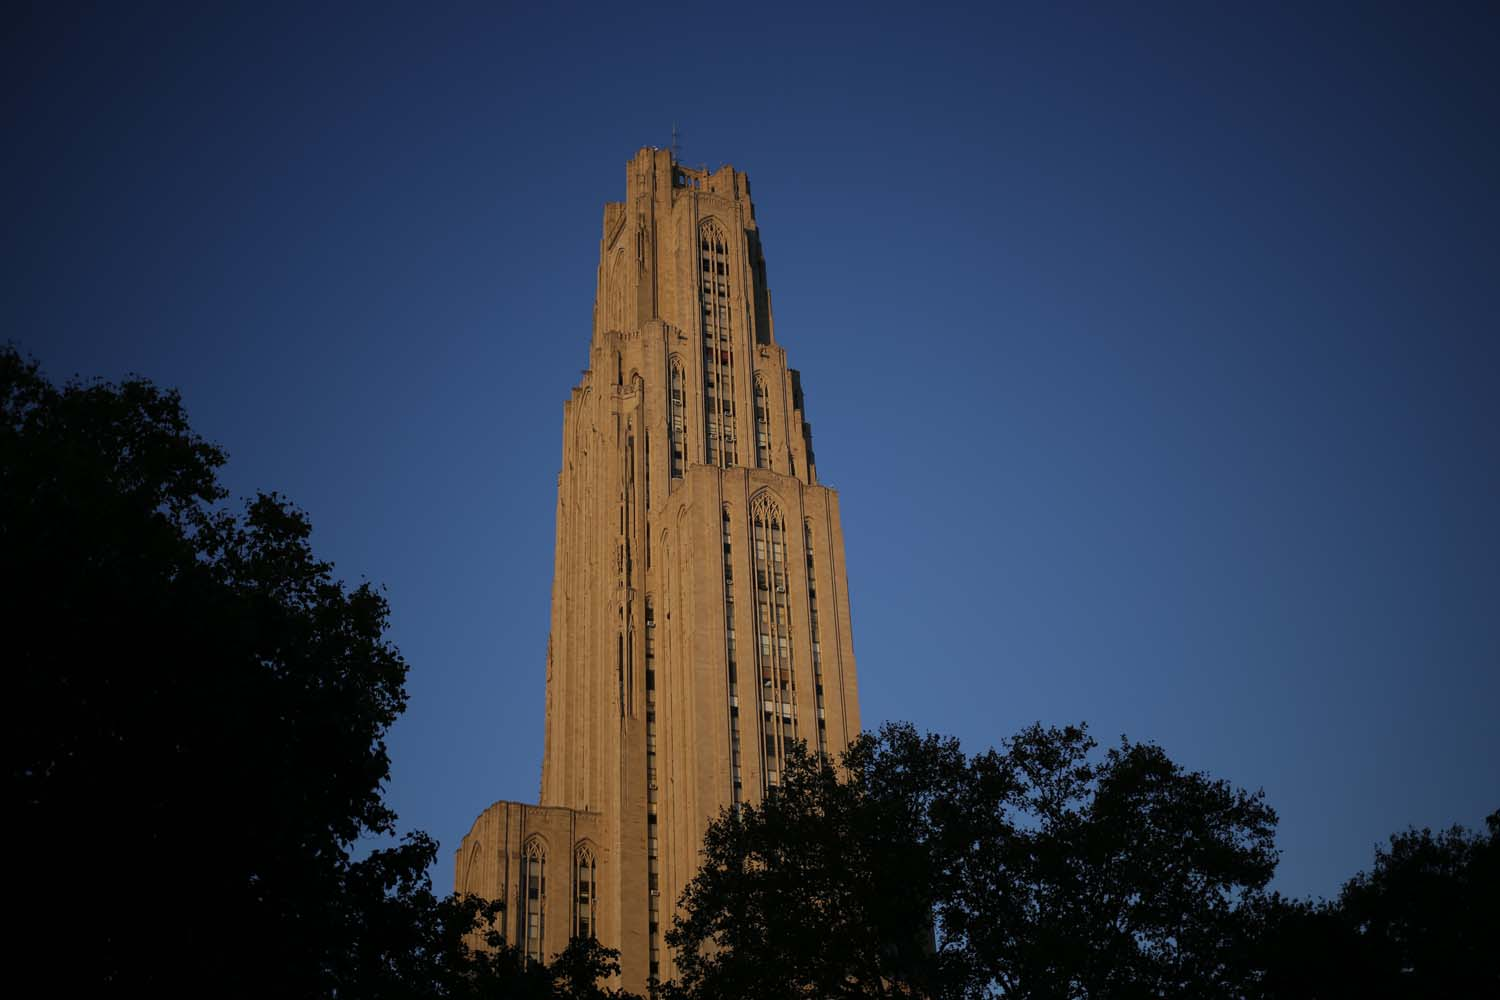 A former Pitt employee filed a civil complaint on Oct. 4 against the University in federal court for allegedly firing her based on a disability.